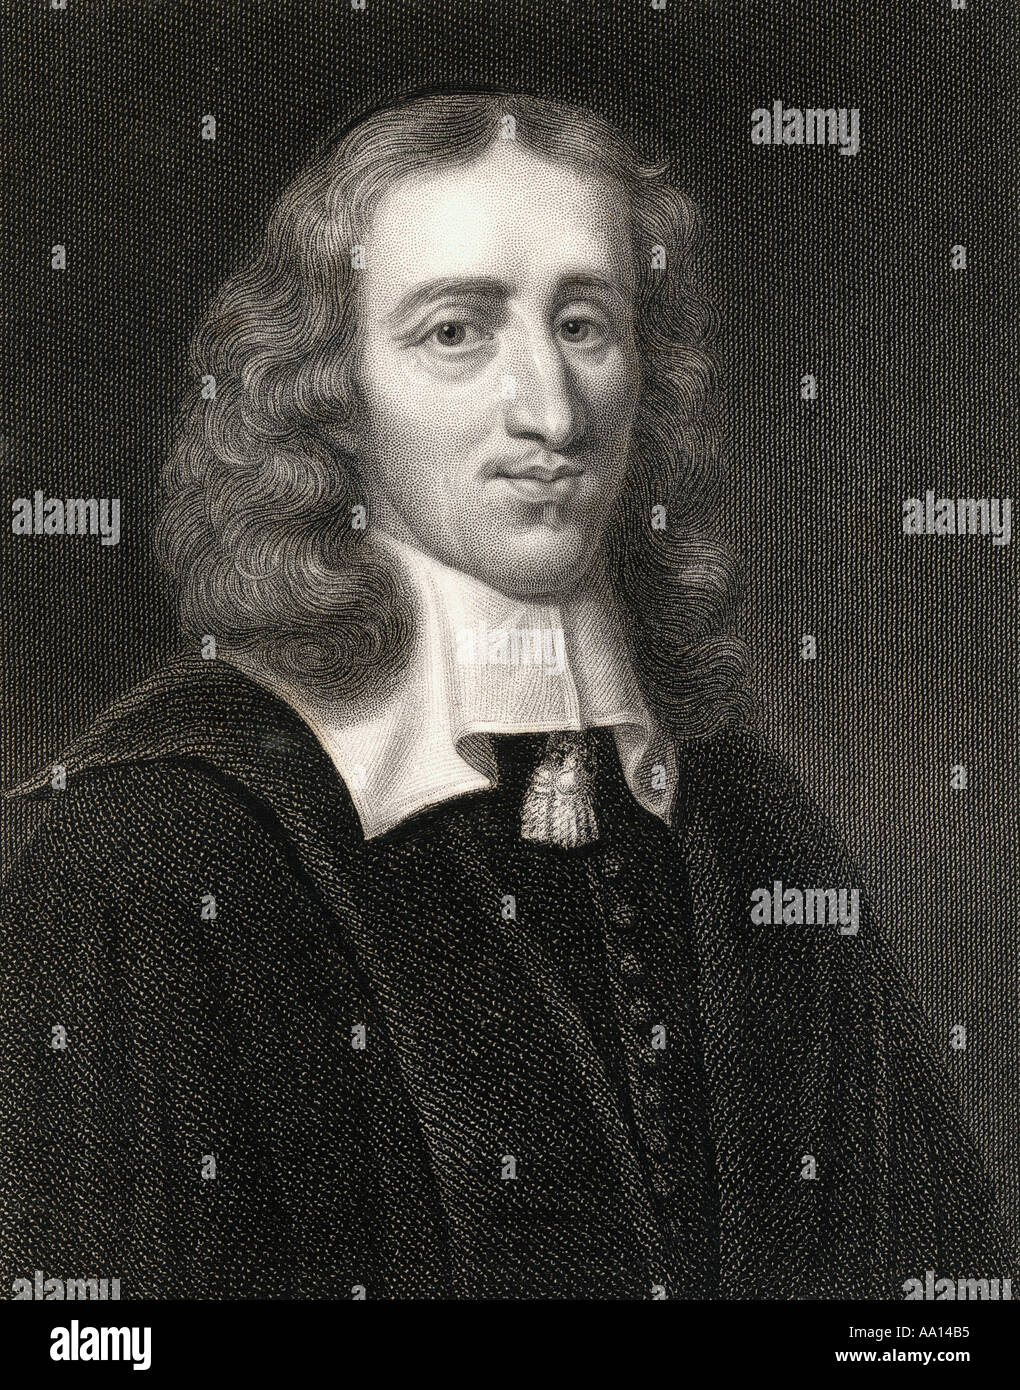 Johan de Witt aka Jan de Witt, 1625 - 1672. Dutch statesman and political leader of Holland - Stock Image